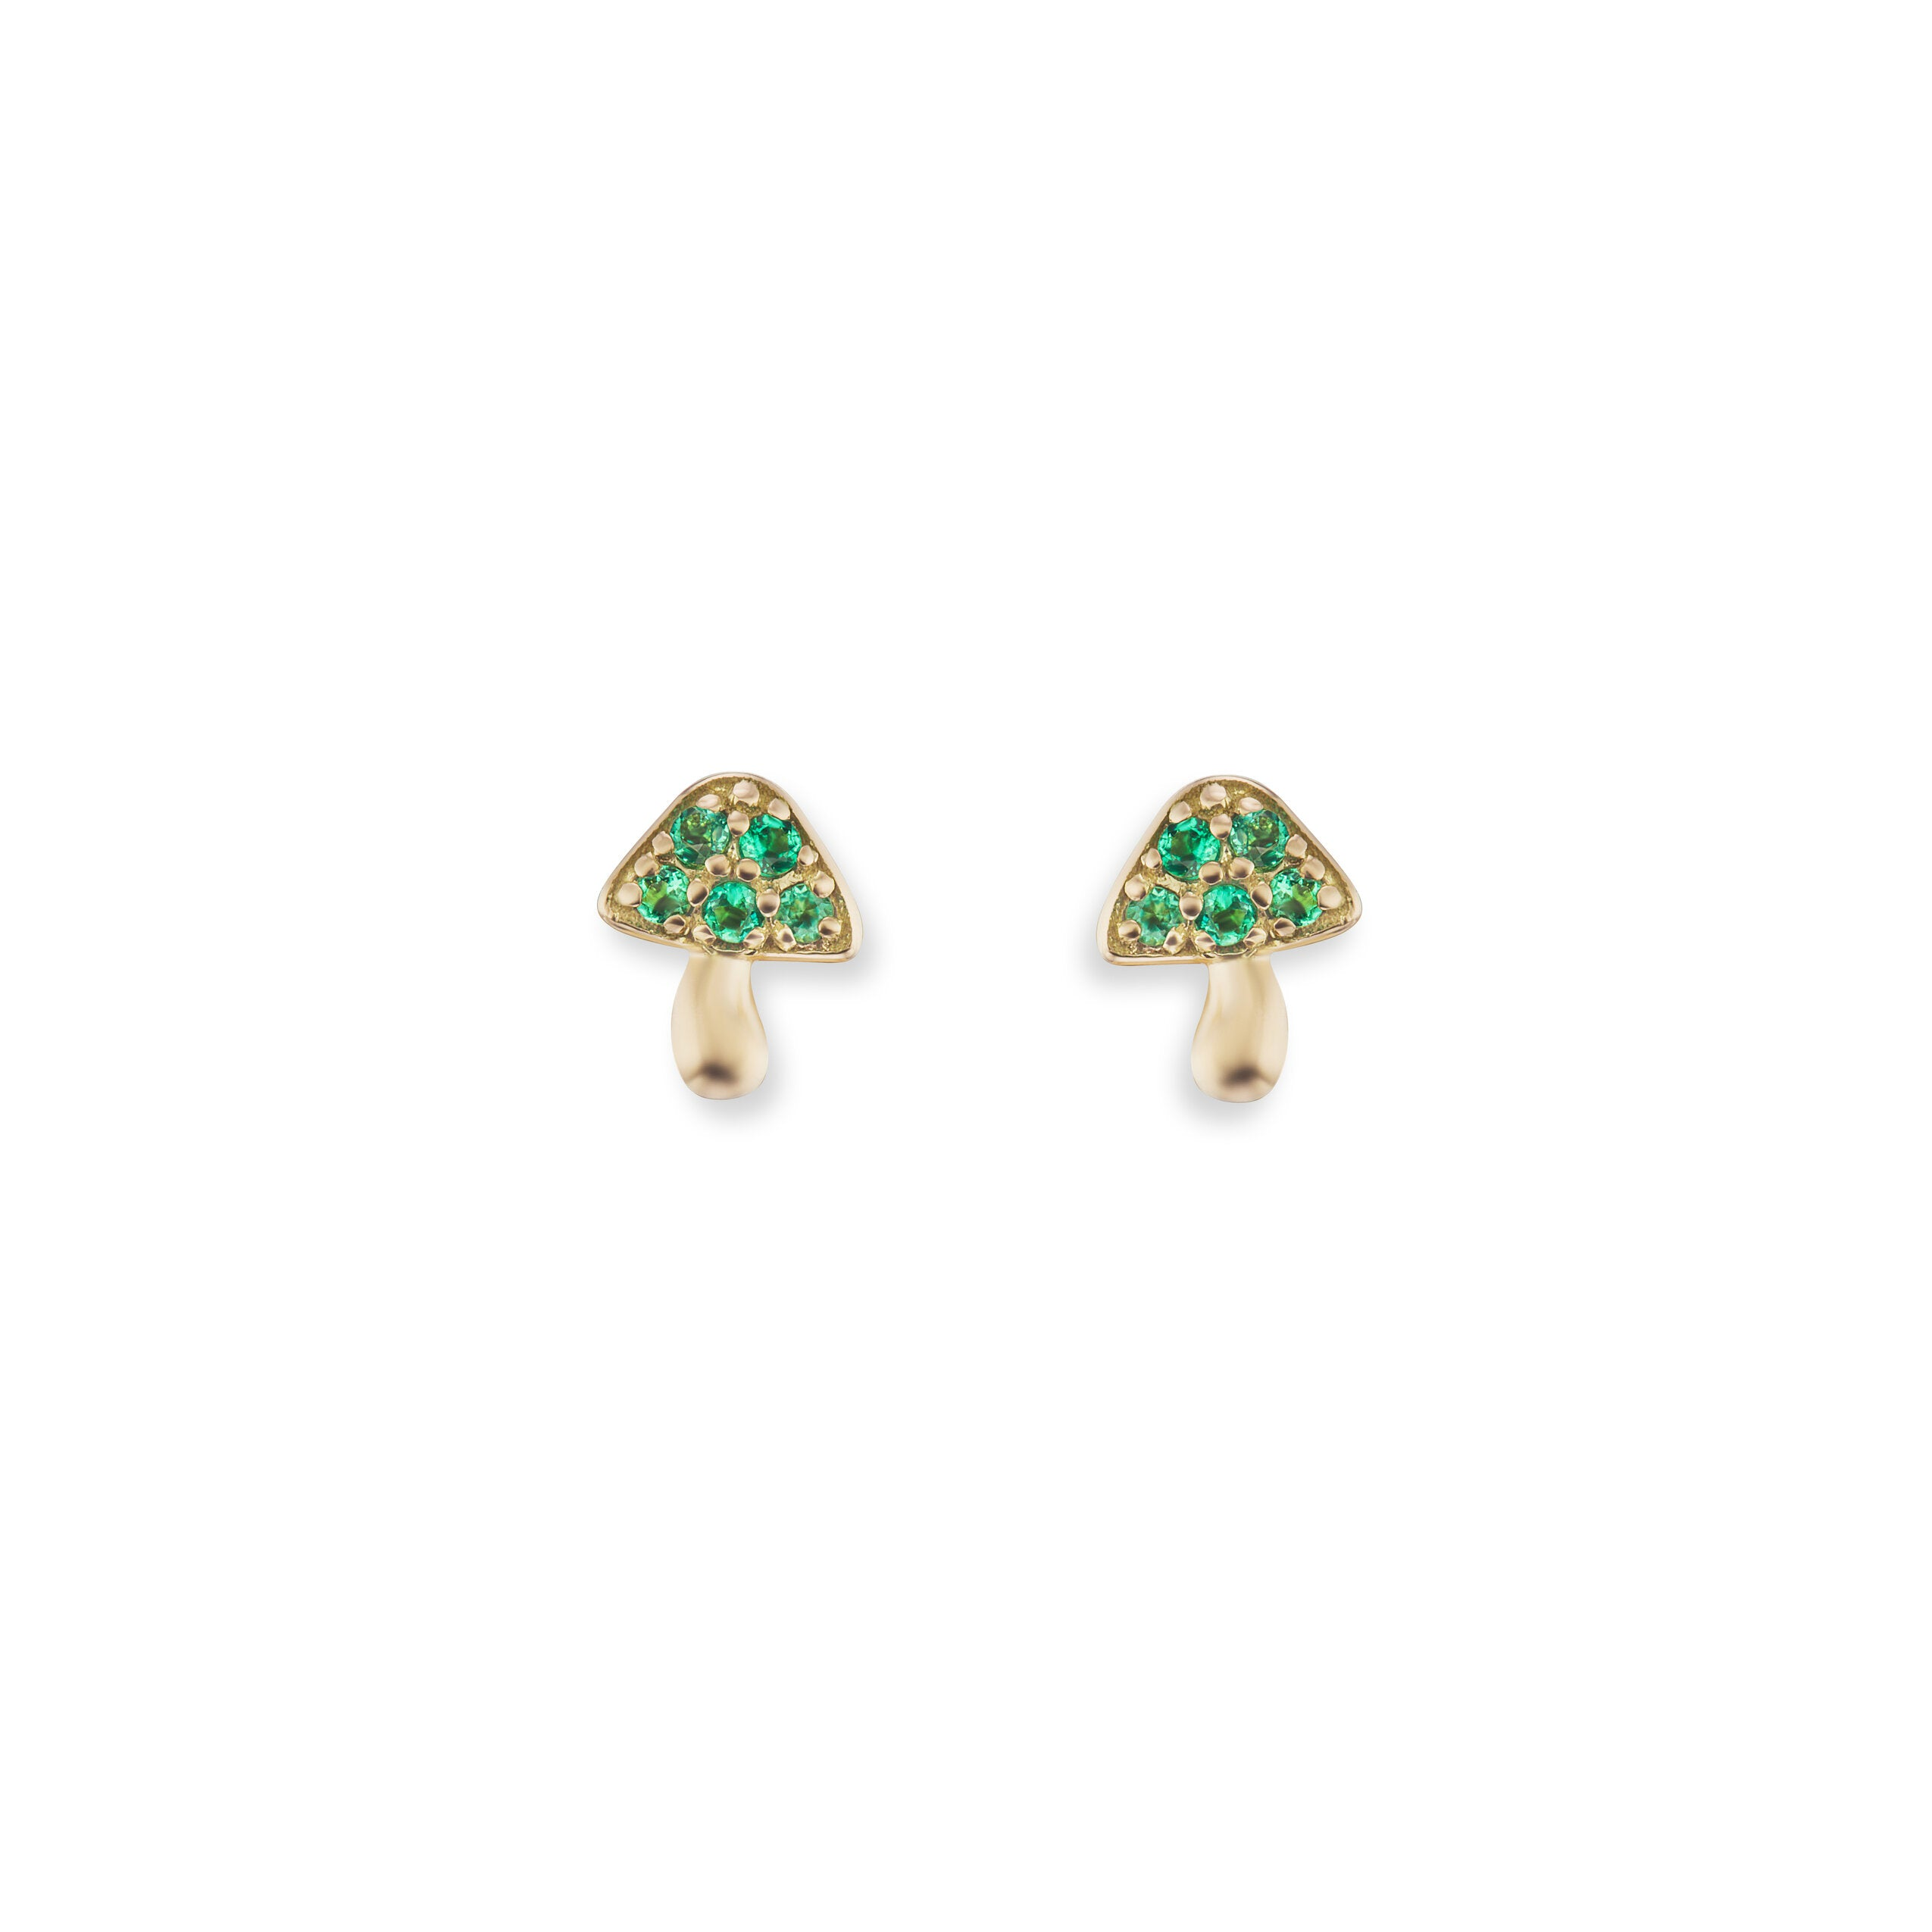 Tiny Mushroom Stud Earrings